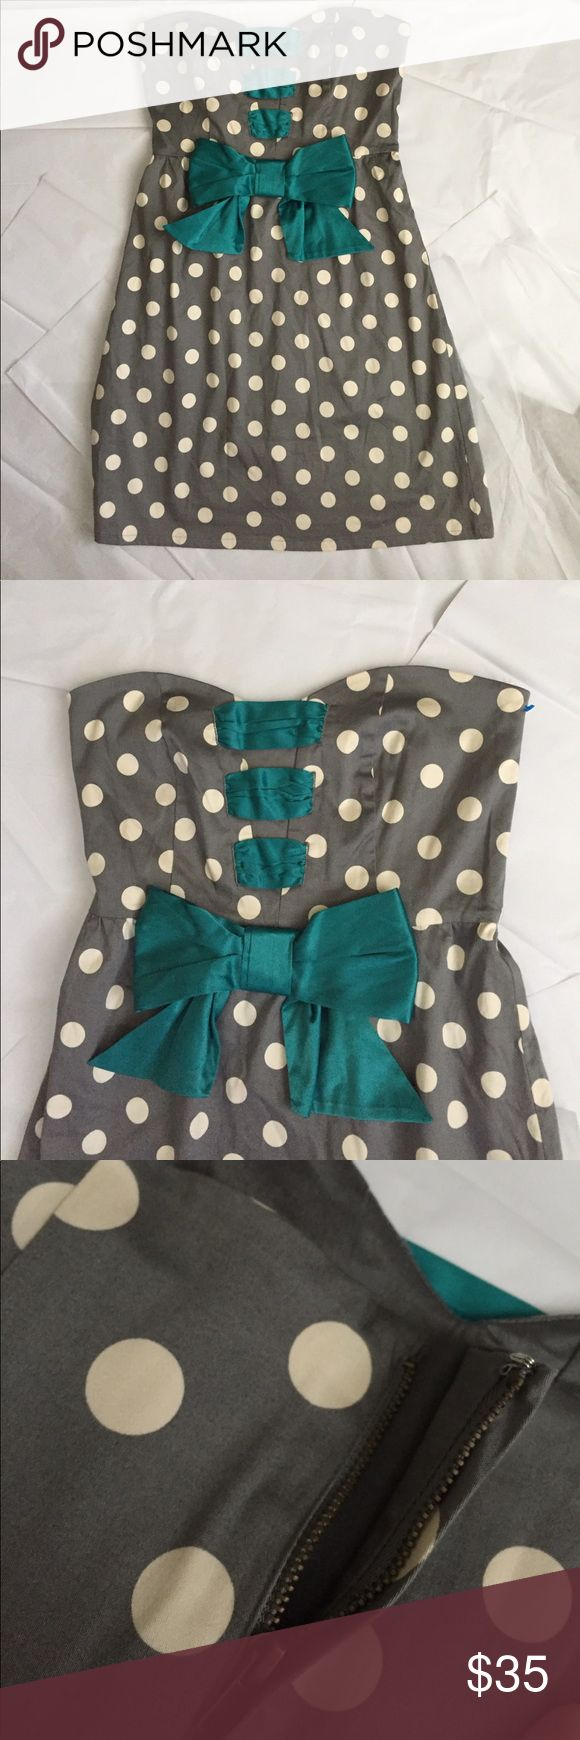 Judith March Dress! Judith March Gray polka dot sweetheart dress! Strapless with zipper in the back! Pretty satin teal green bow in the front! Size Large! 31 inches long. Bust measuring across the front 17 inches. Gently used condition! Great find for sure! Judith March Dresses Strapless